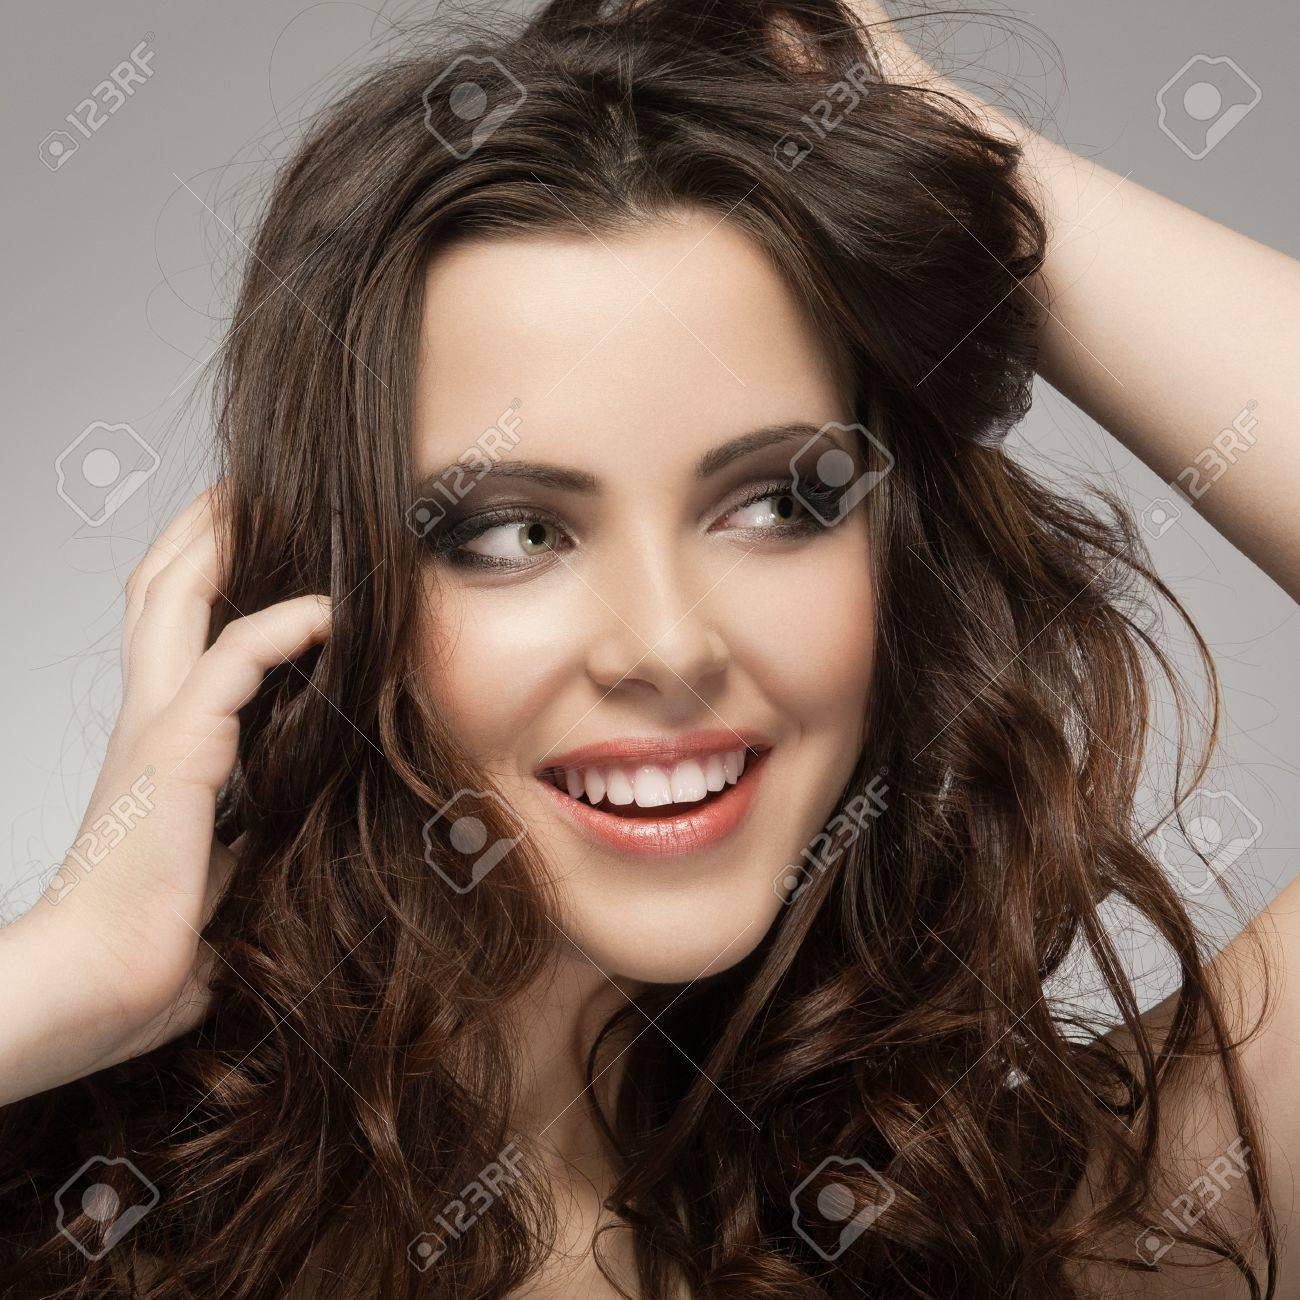 Very beautiful and happy woman hands in her hair pulling. Stock Photo - 12145489